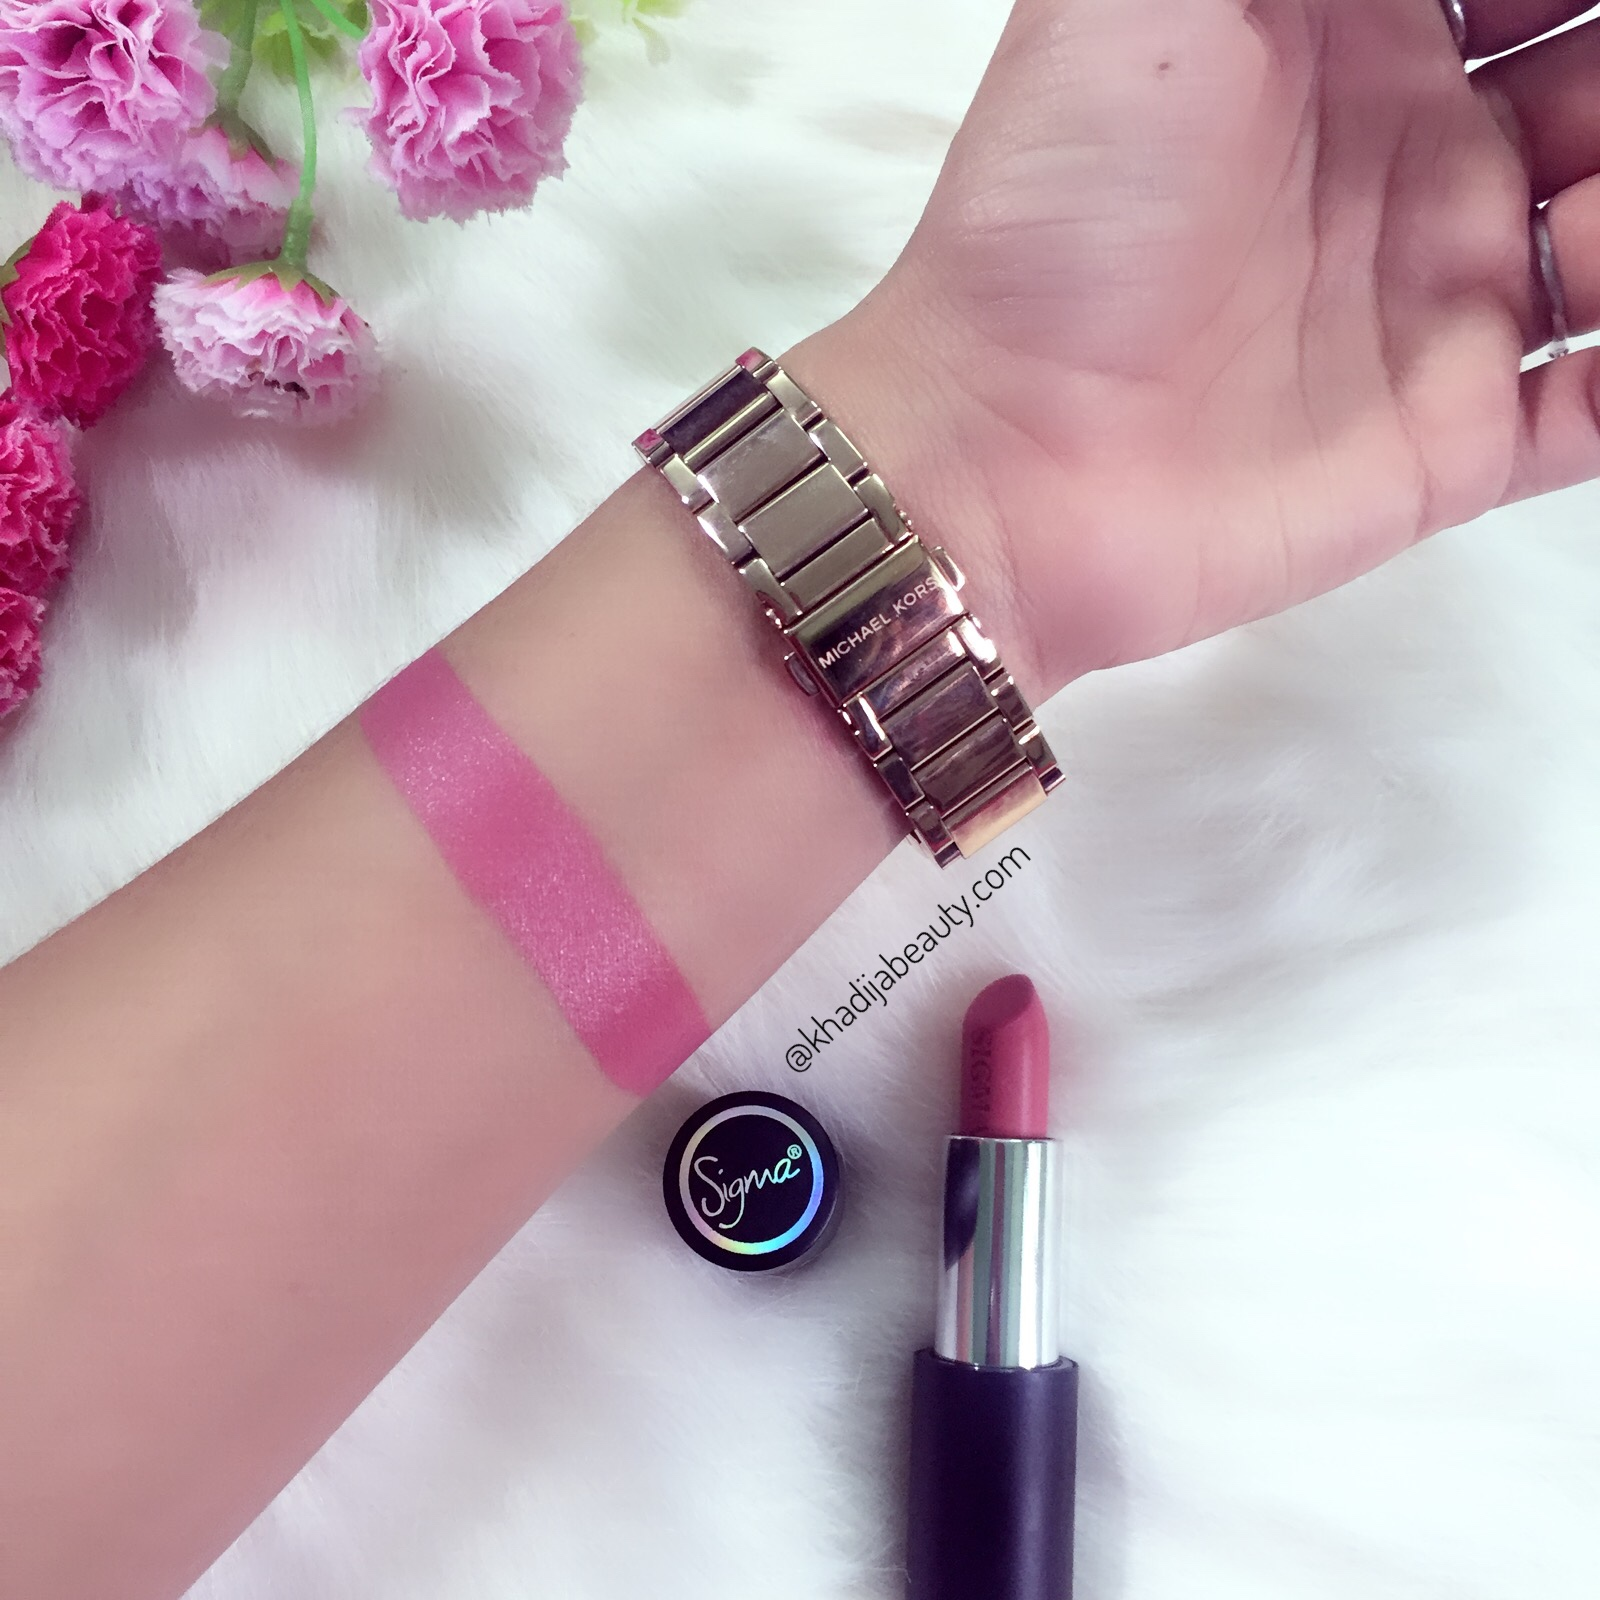 sigma power stick review and swatches in spades, khadija beauty